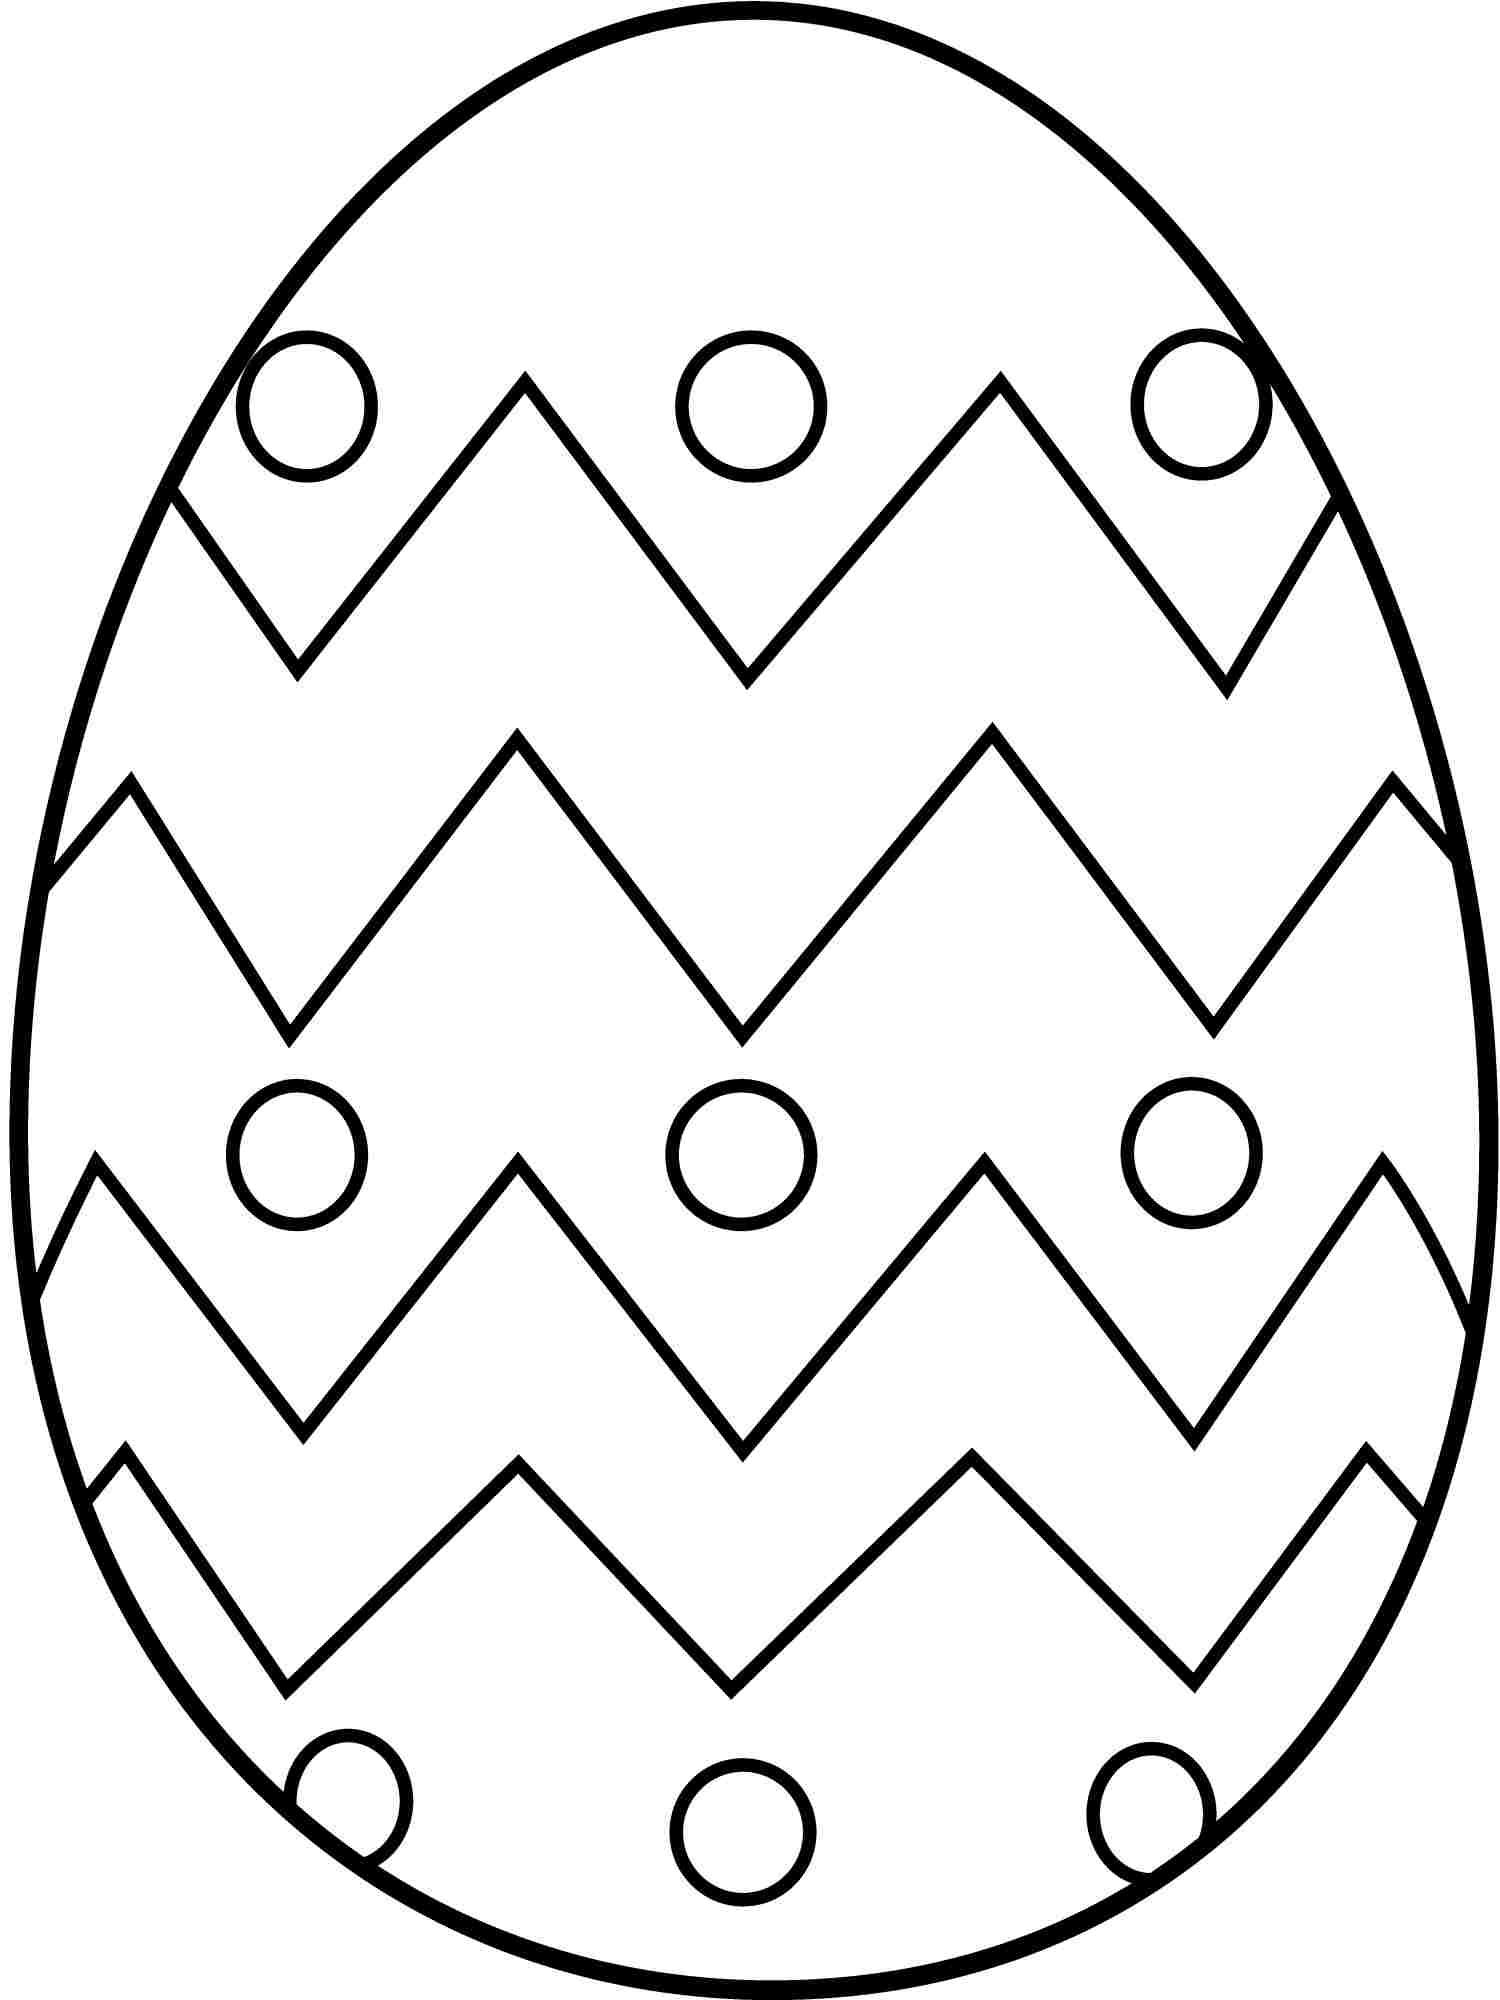 1500x2000 Easter Egg Coloring Pages Printable Bloodbrothers Me Ribsvigyapan